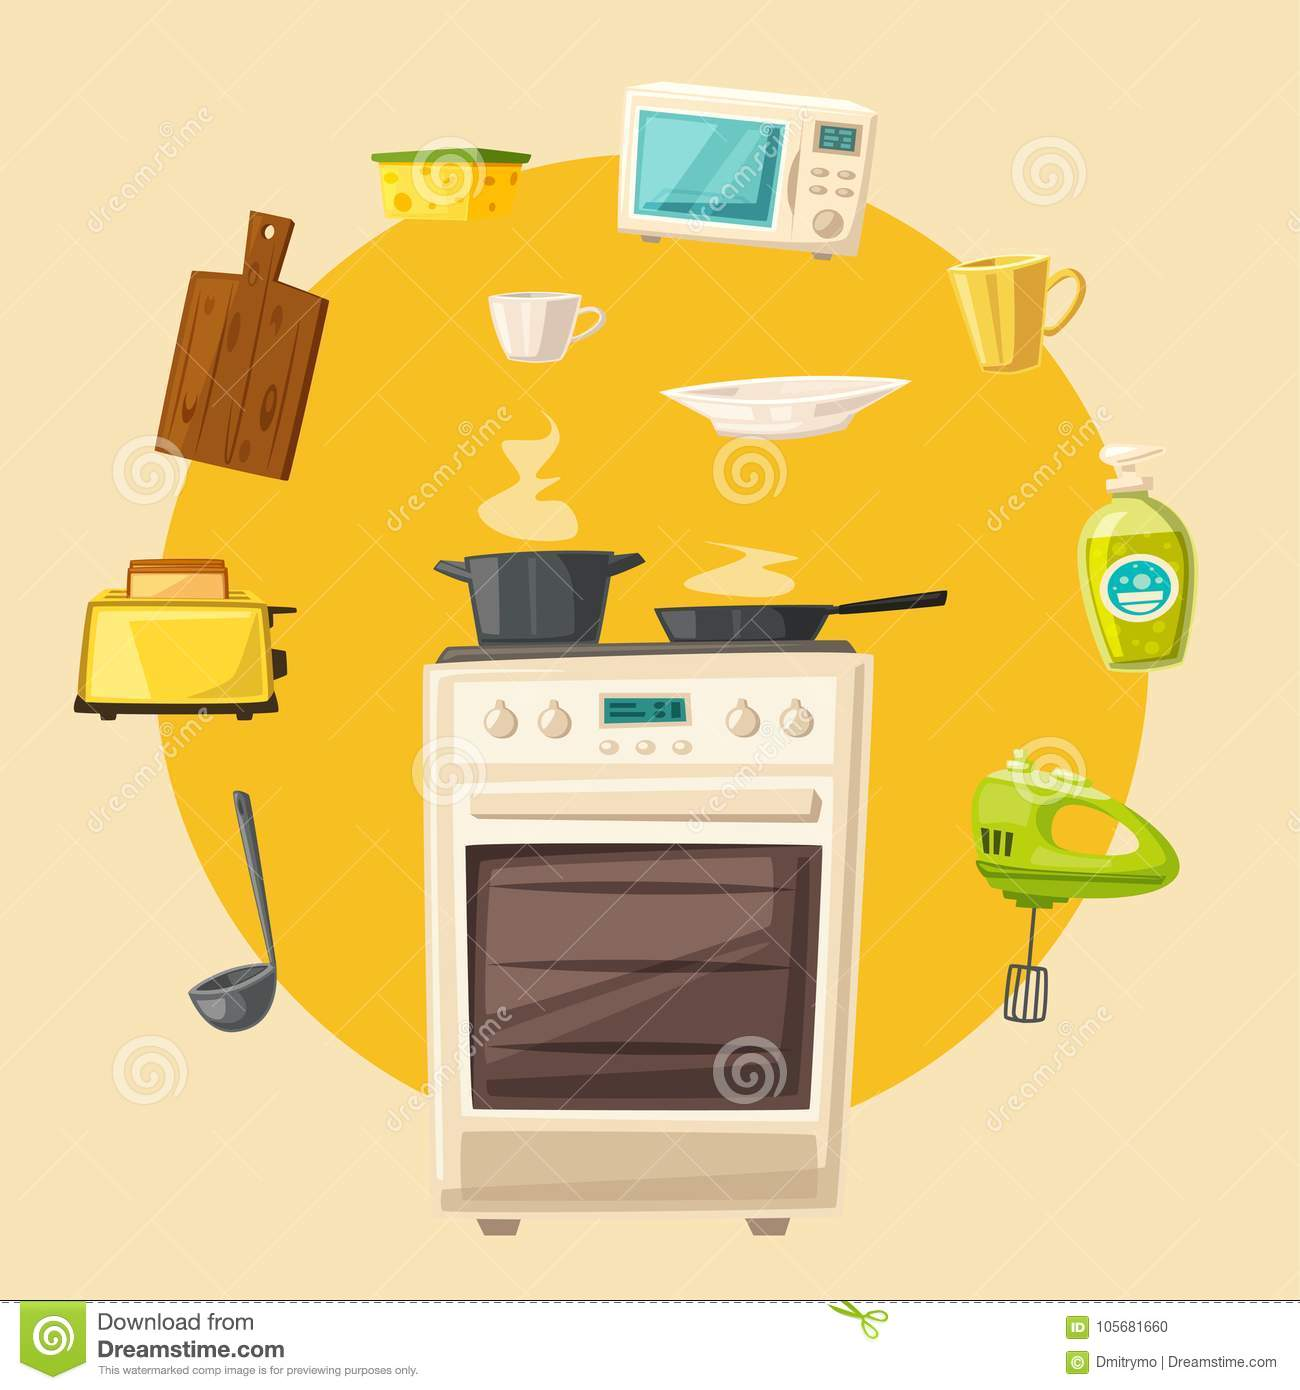 Cartoon Kitchen Furniture: Kitchen Interior With Furniture. Cartoon Vector